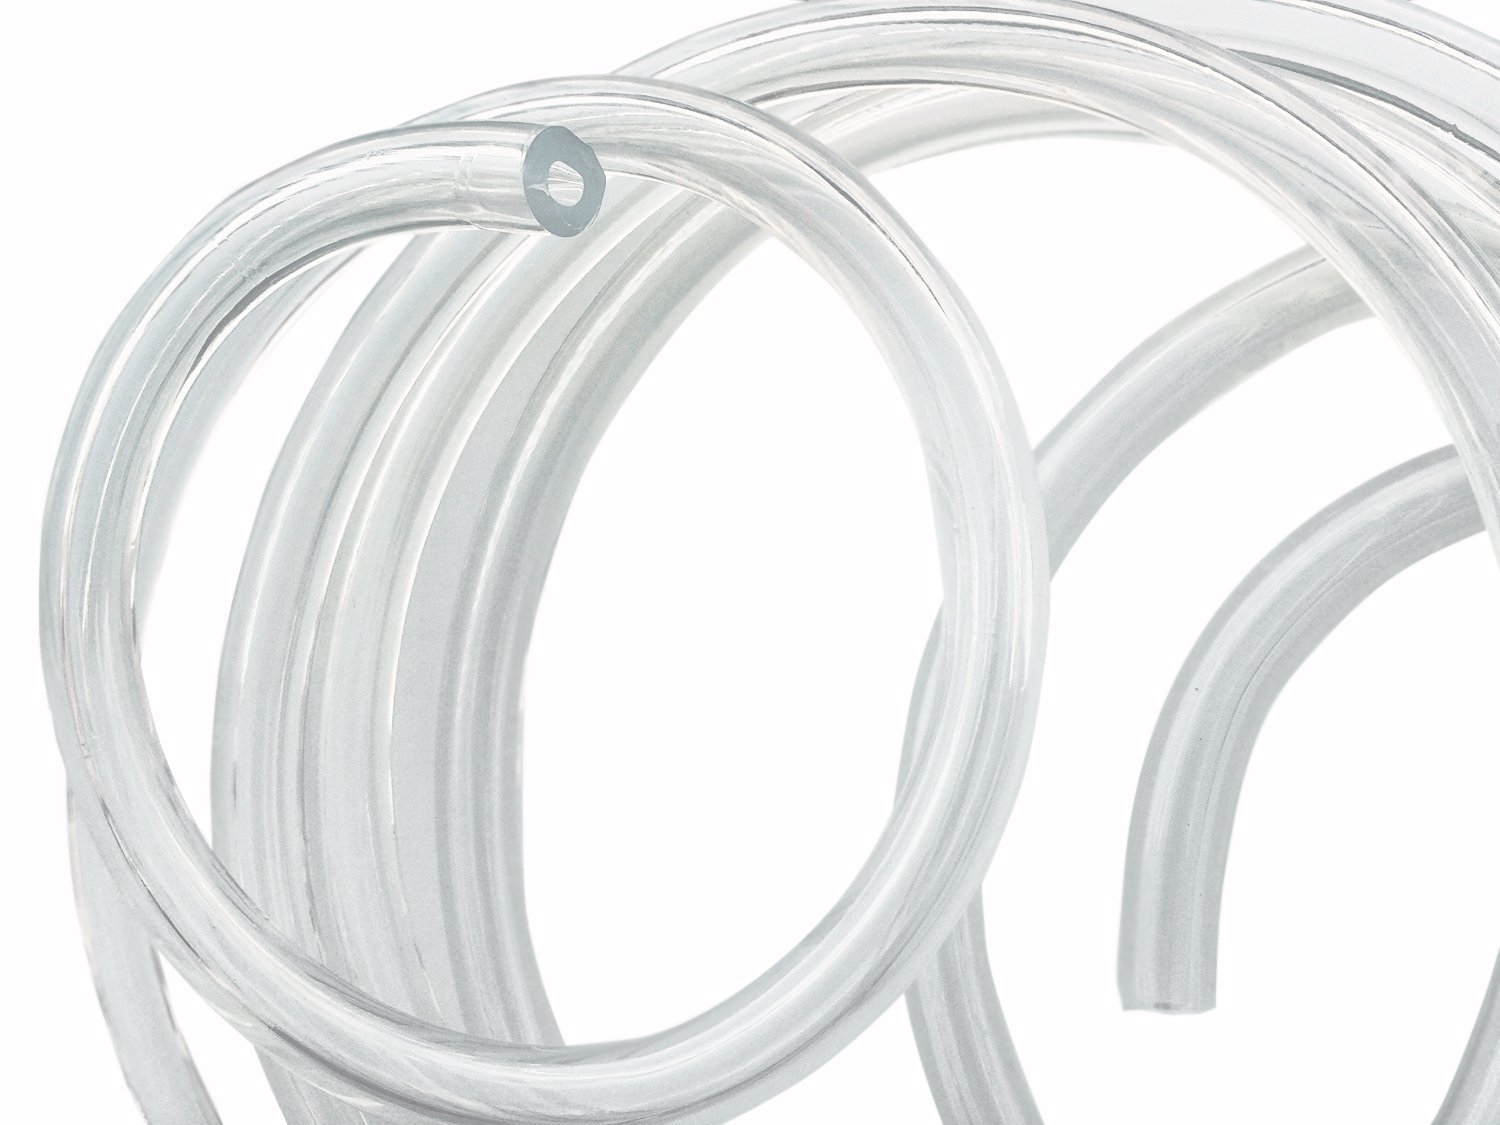 50 Feet - 3/16'' ID 7/16'' OD Clear Vinyl Tubing FDA Approved Food Grade Multipurpose Tube for Beer Line, Kegerator, Wine Making, Aquaponics, Air Hose by Proper Pour by Proper Pour